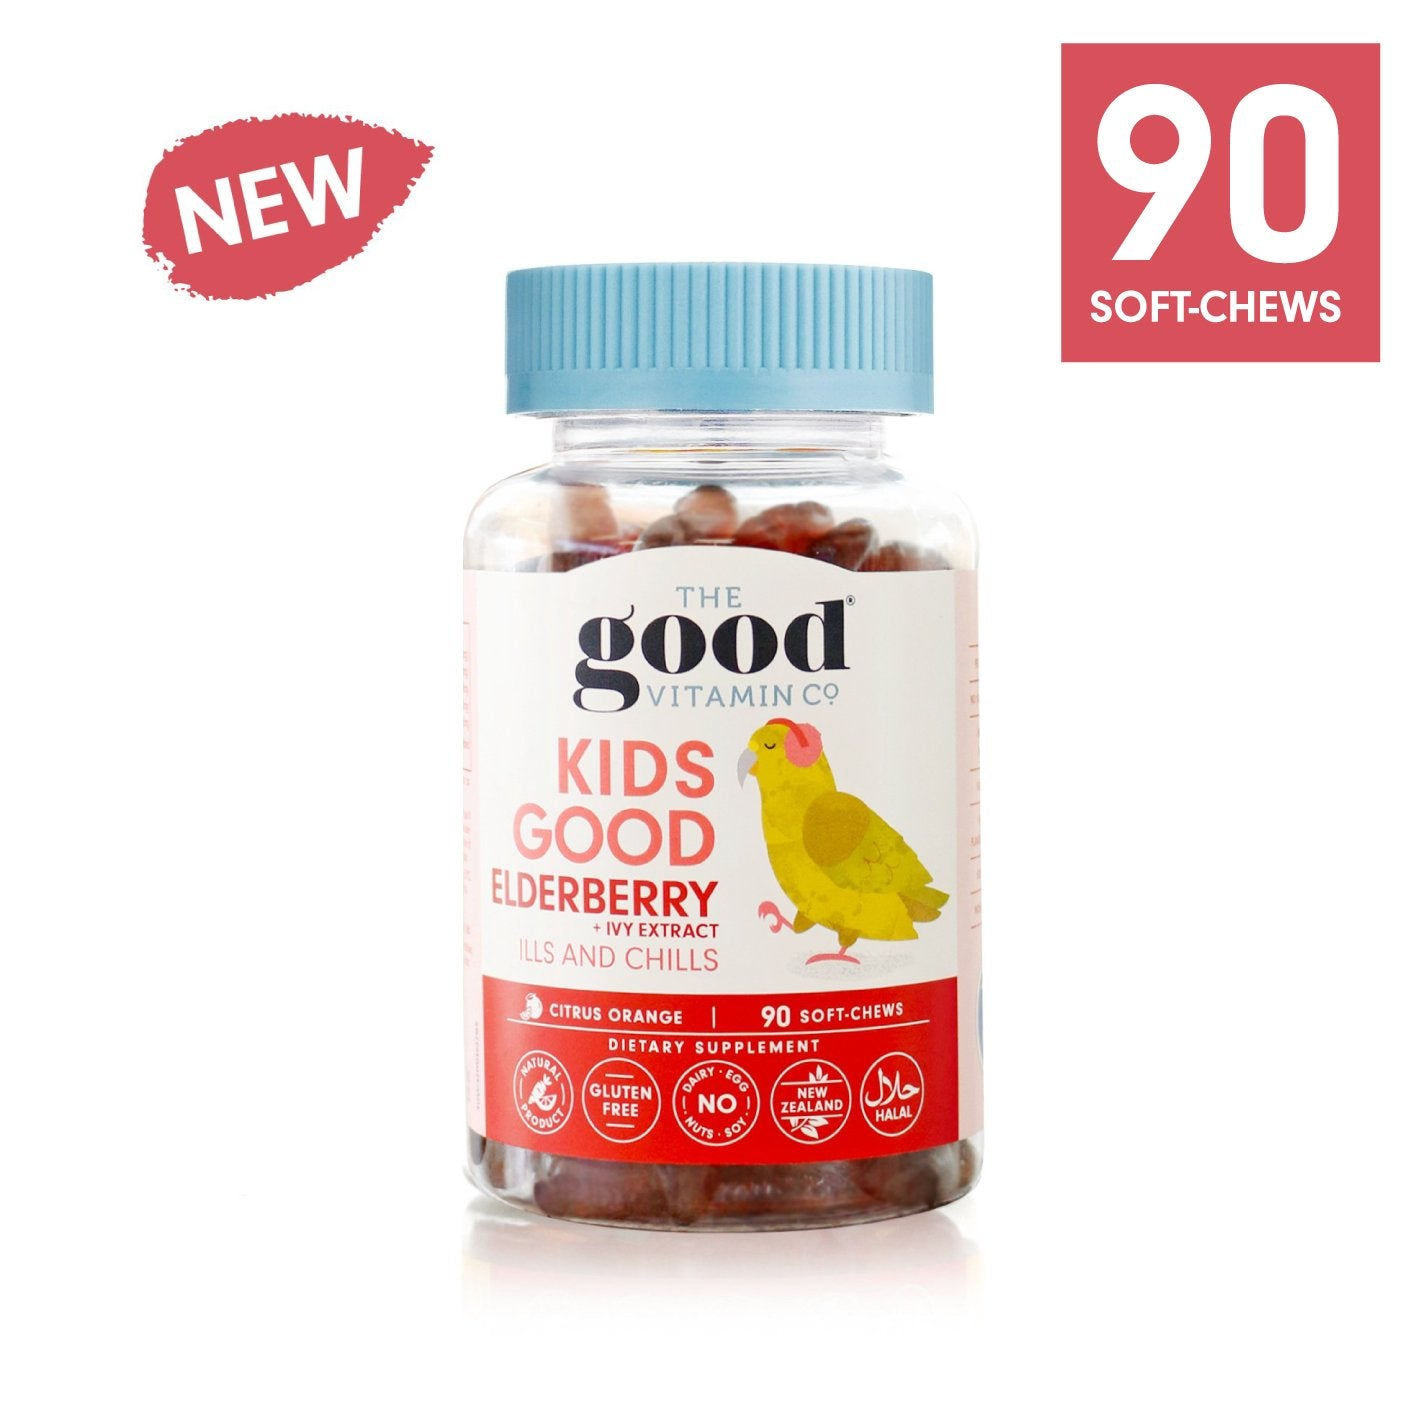 The Good Vitamin Co. Kids Good Elderberry + Ivy Extract 90 Soft Chews